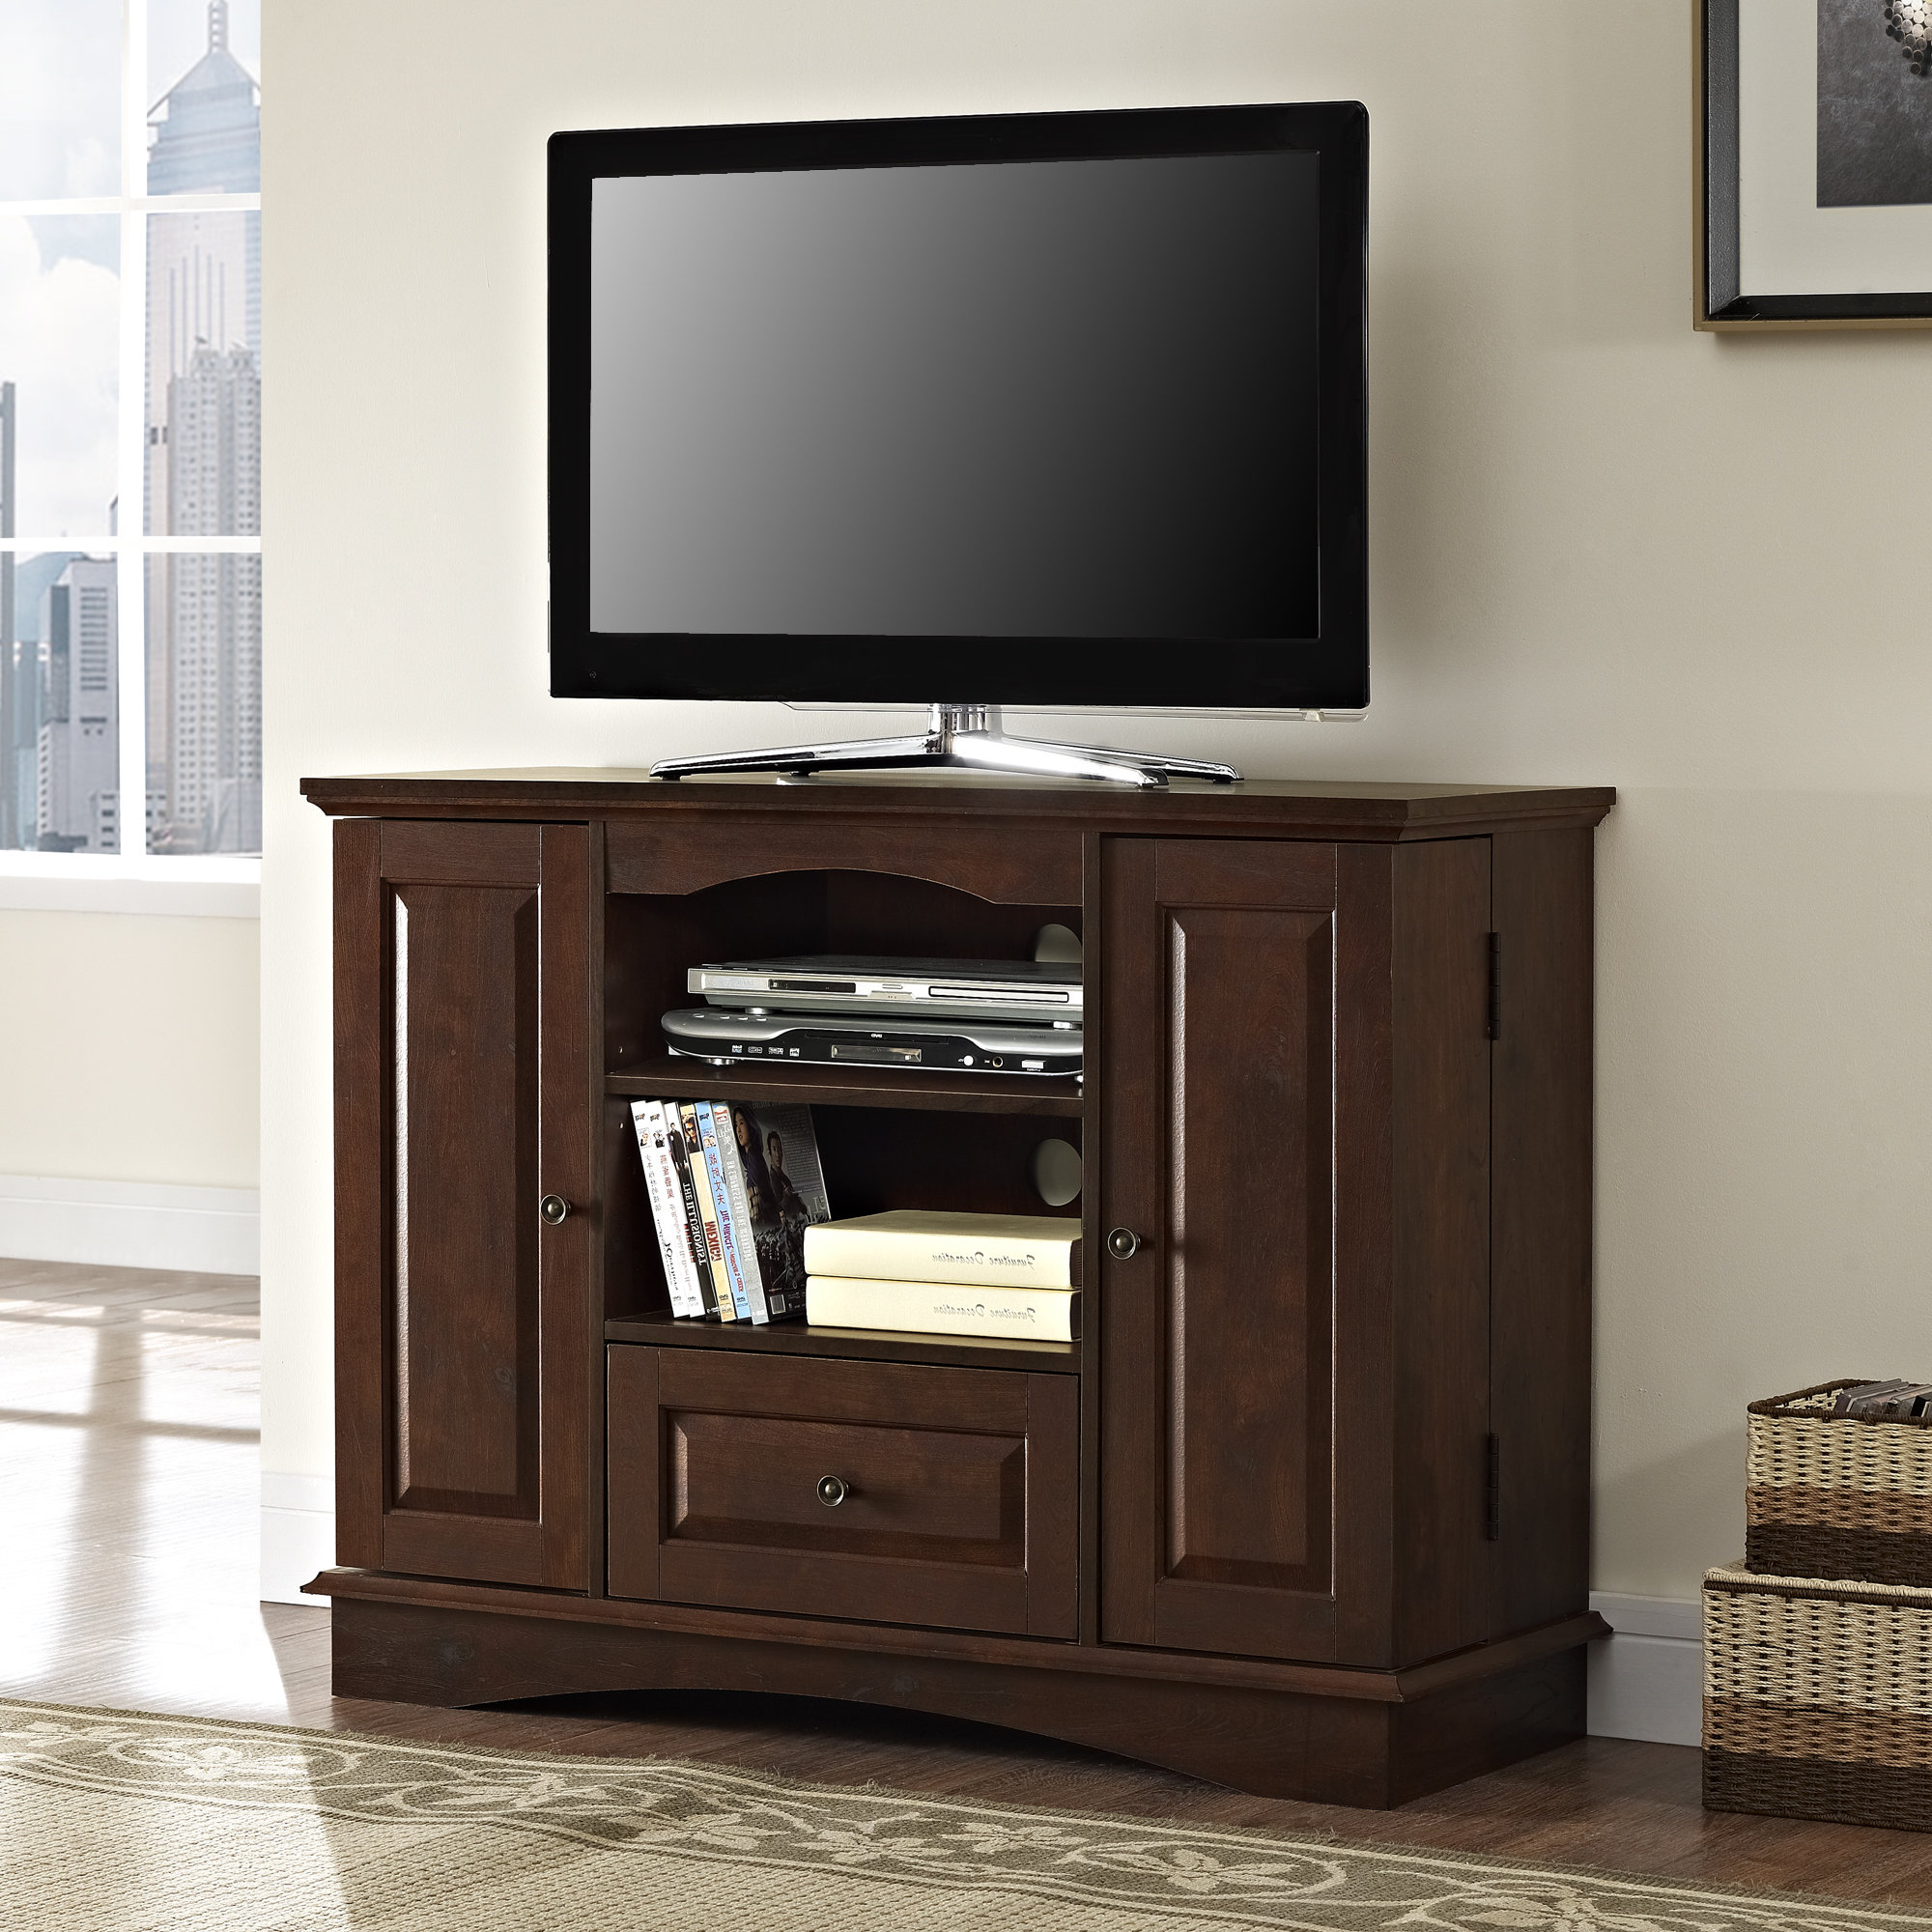 Tv Stands | Birch Lane For Walton 60 Inch Tv Stands (Gallery 10 of 20)